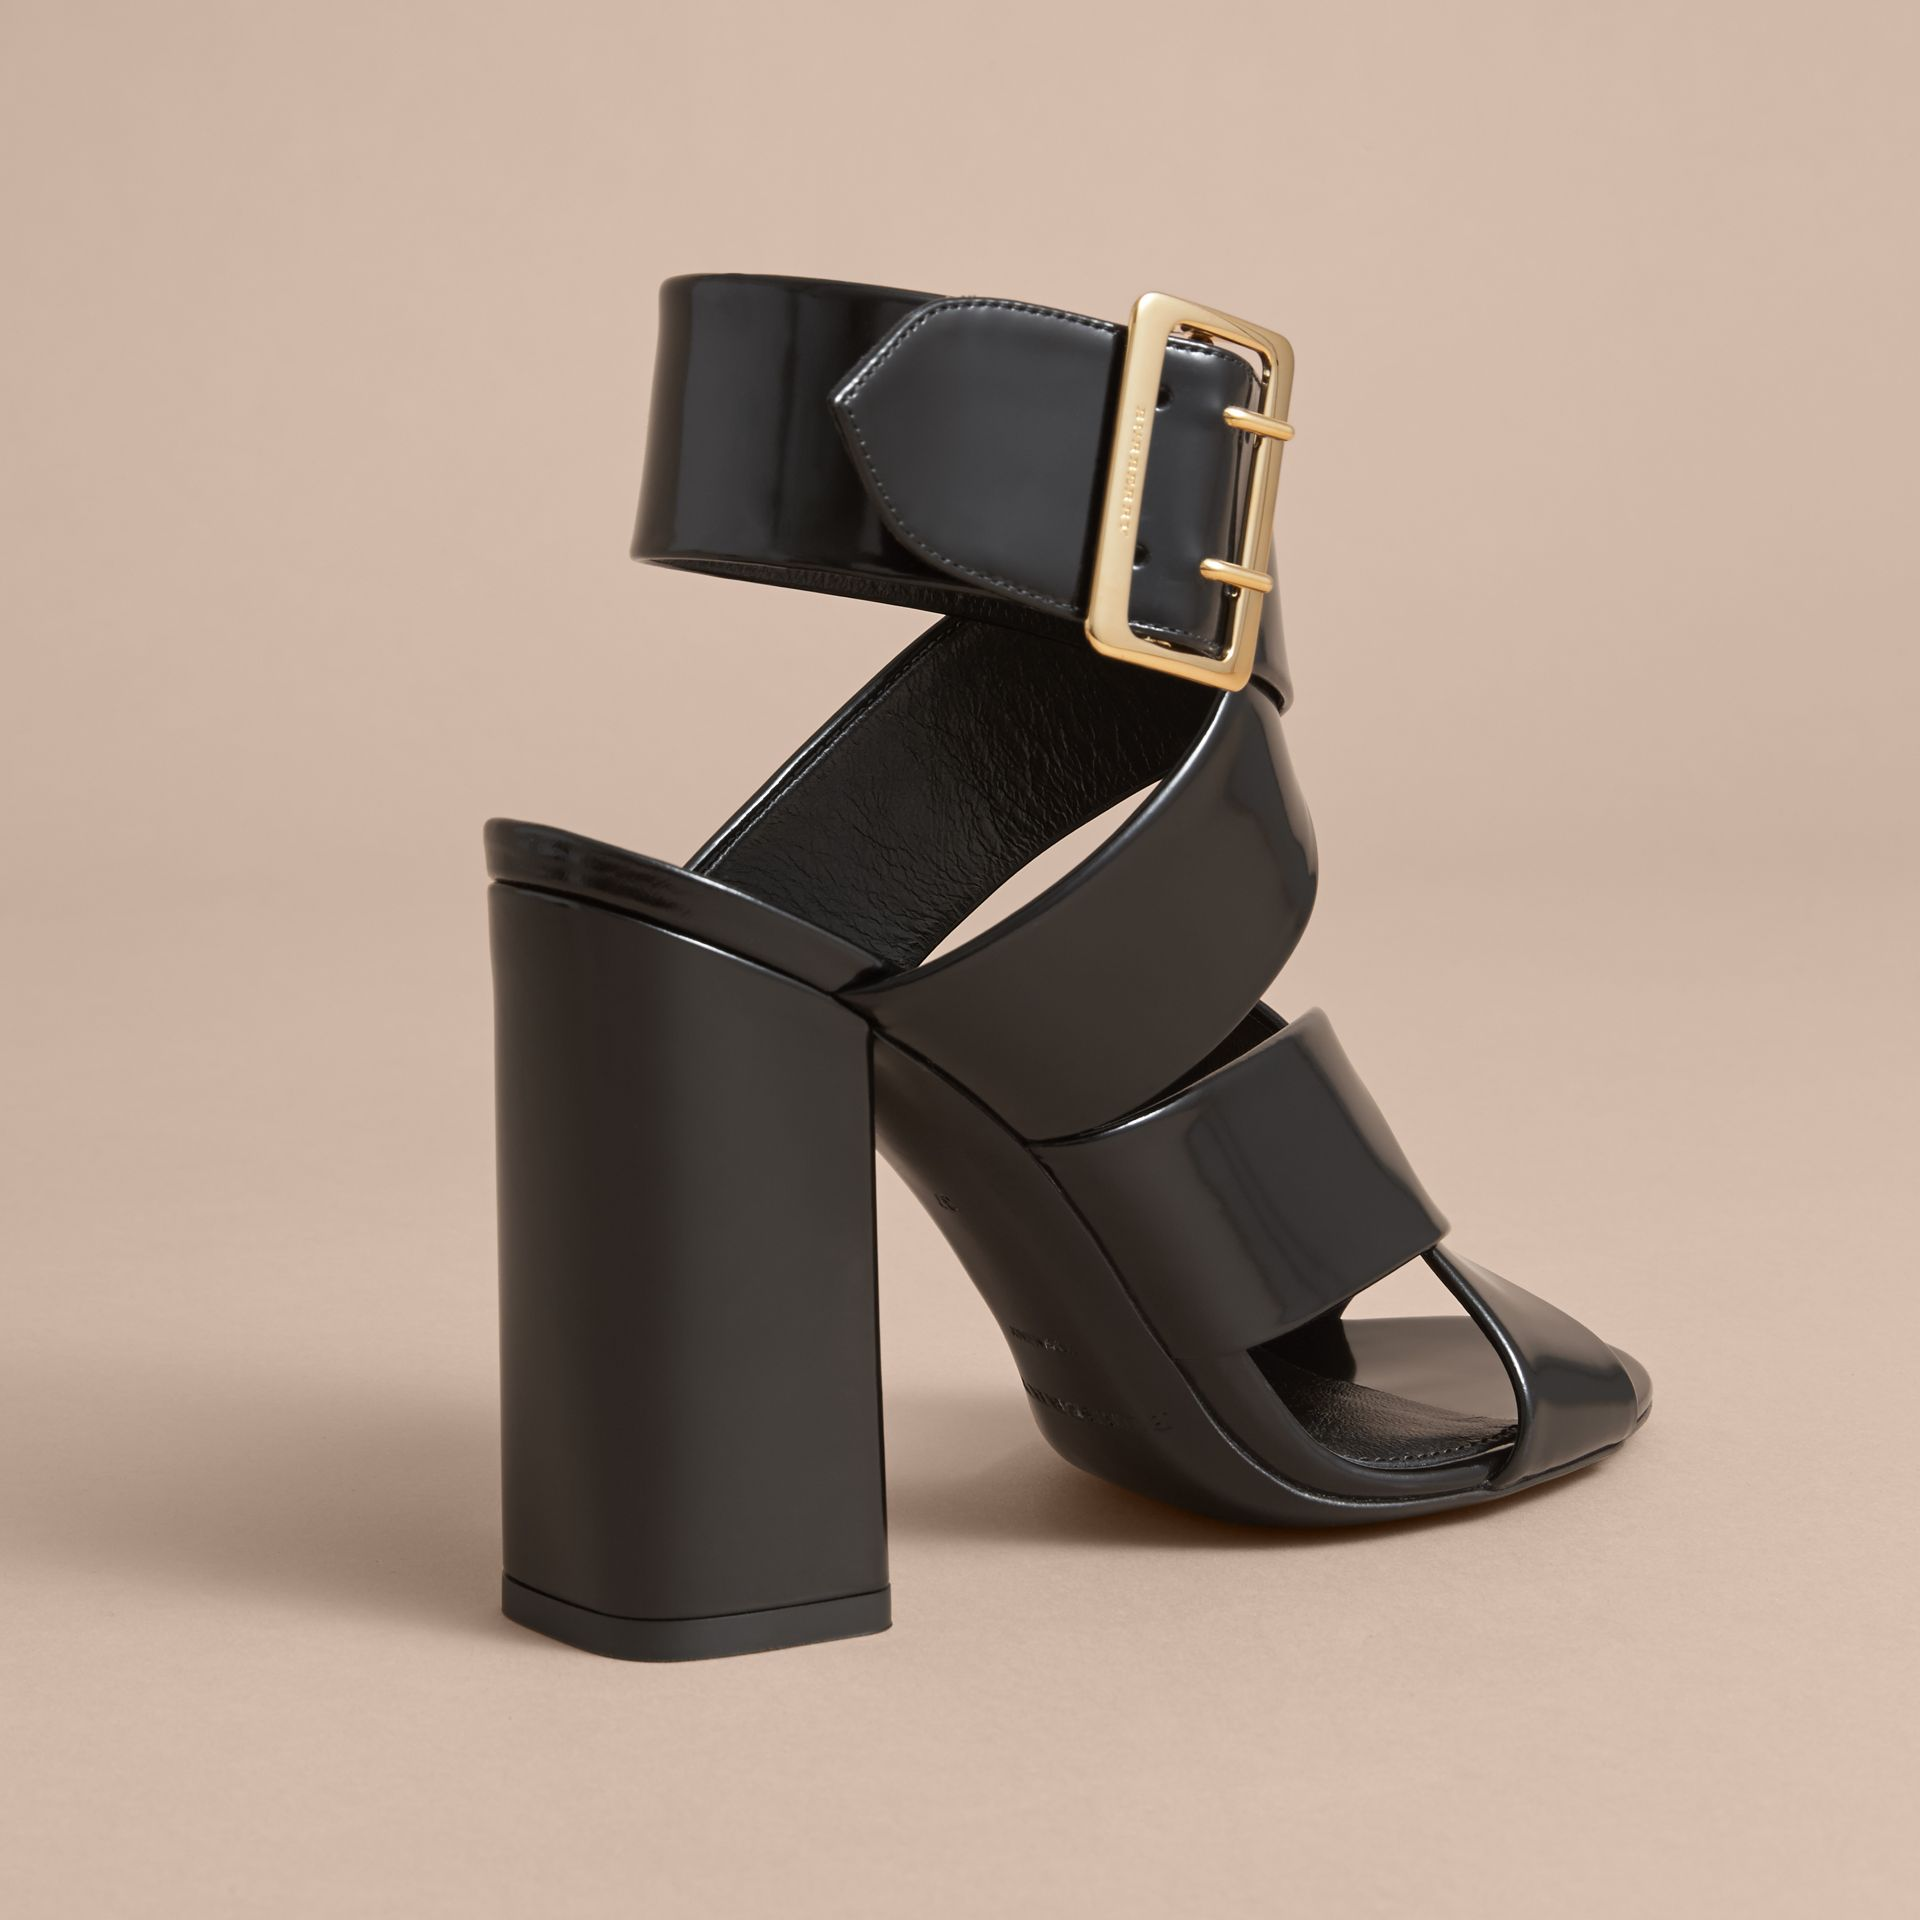 Buckle Detail Patent Leather Sandals in Black - Women | Burberry - gallery image 4